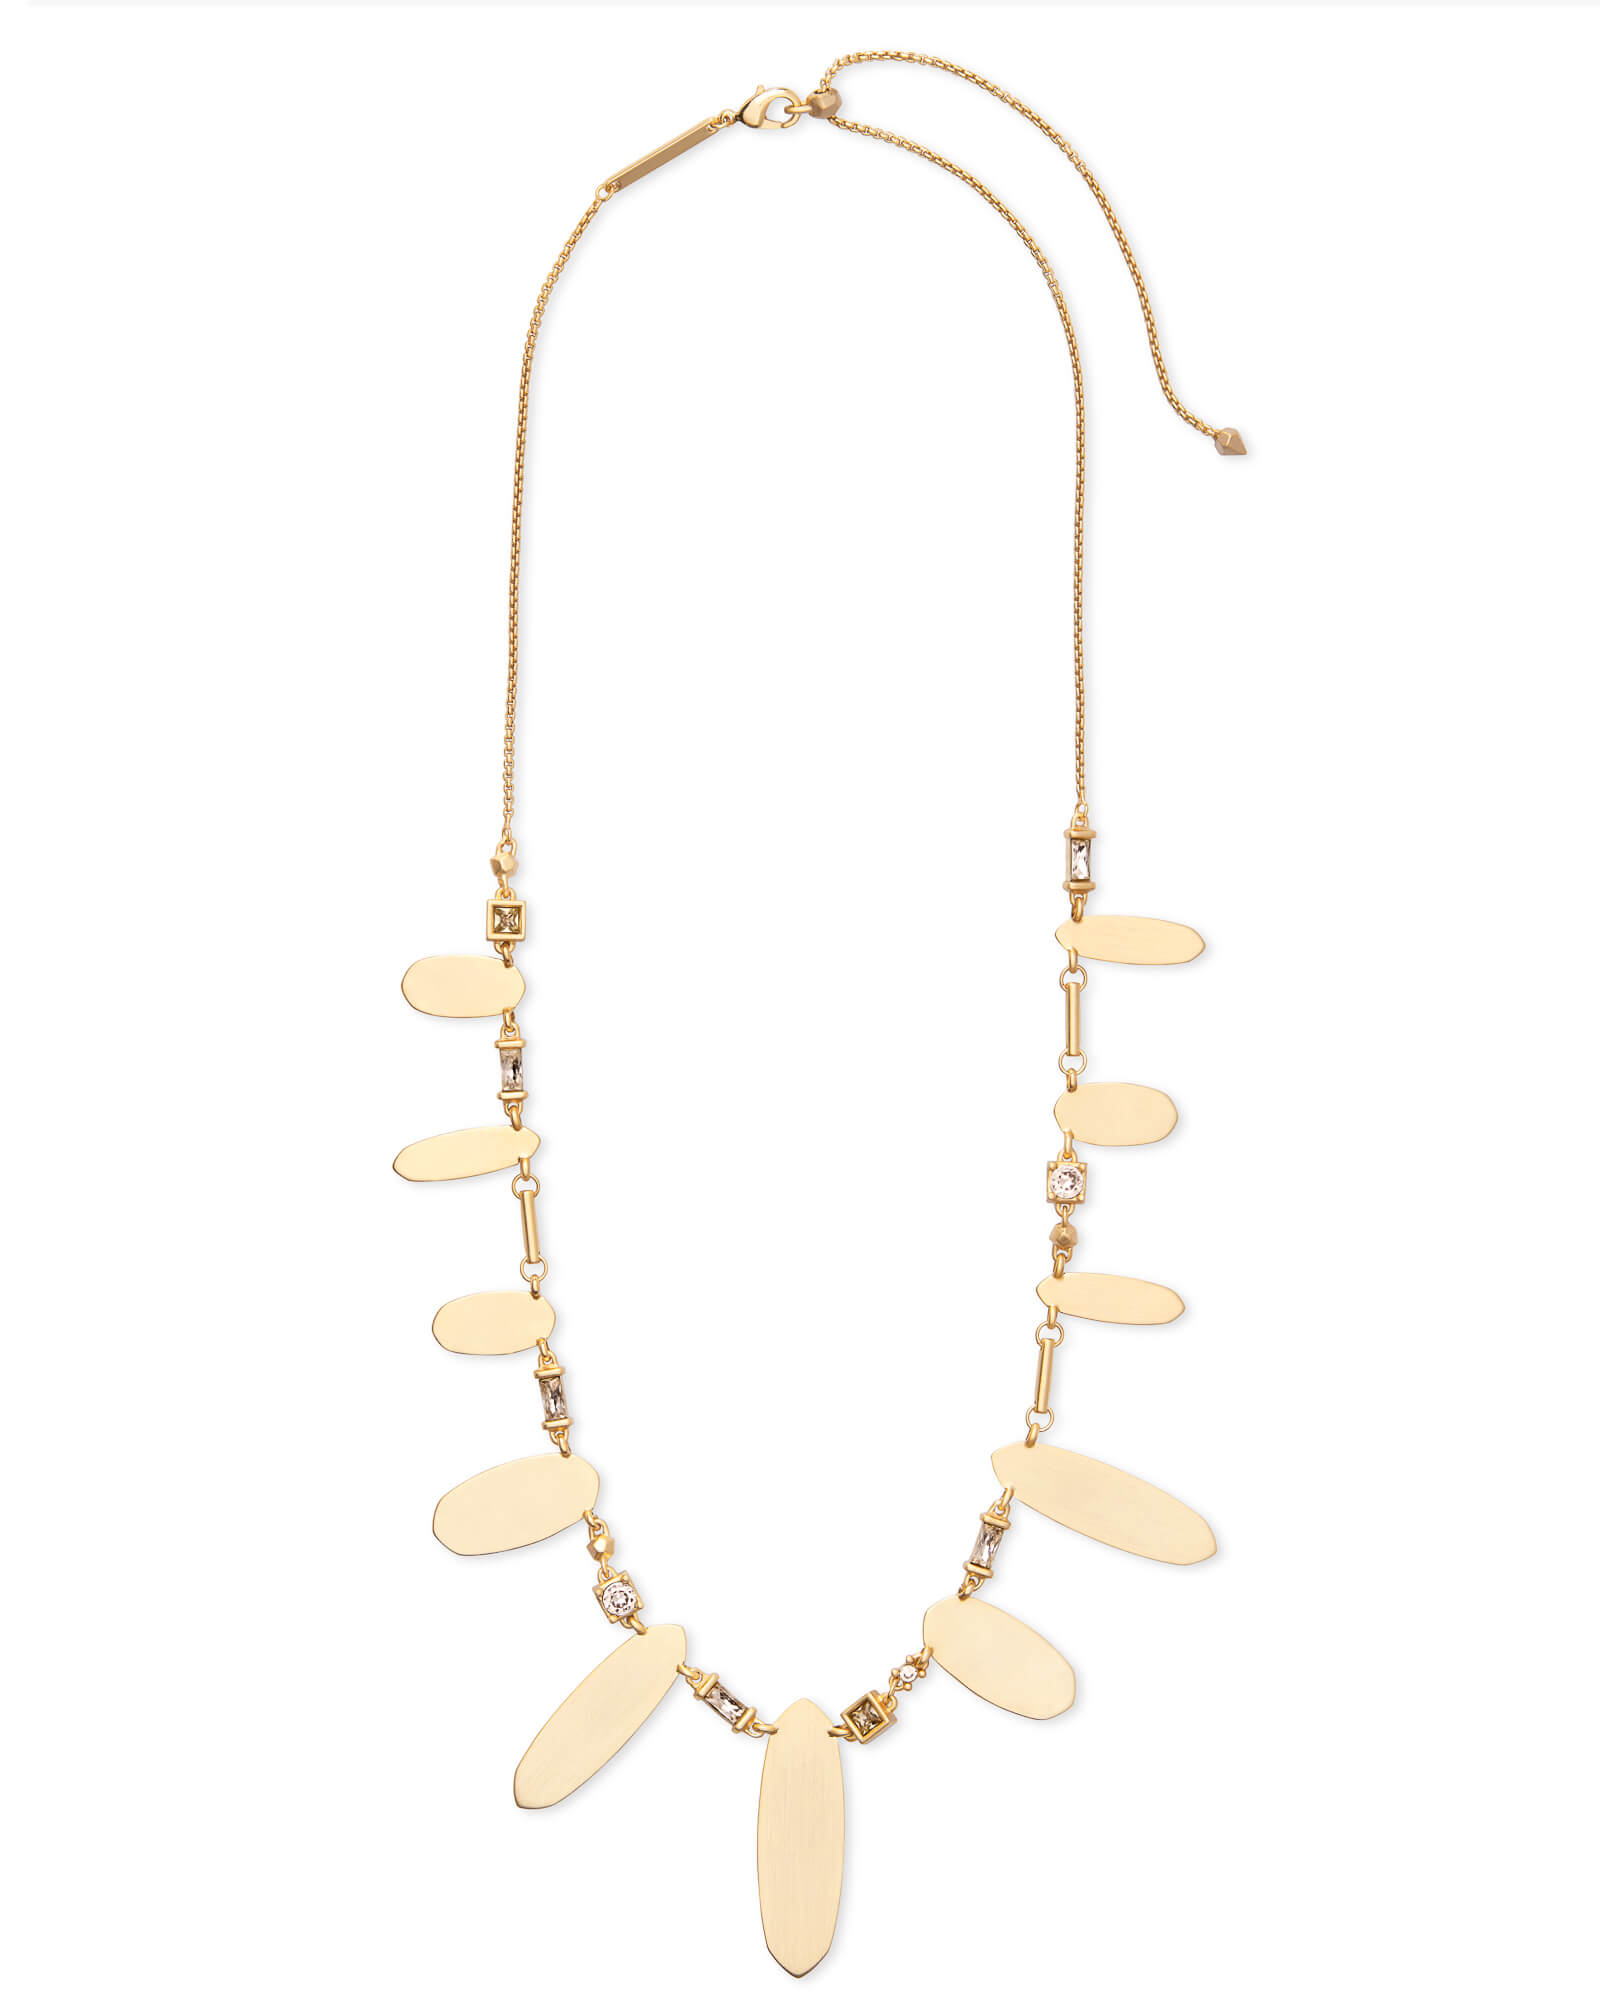 Airella Gold Choker Necklace in Smoky Mix